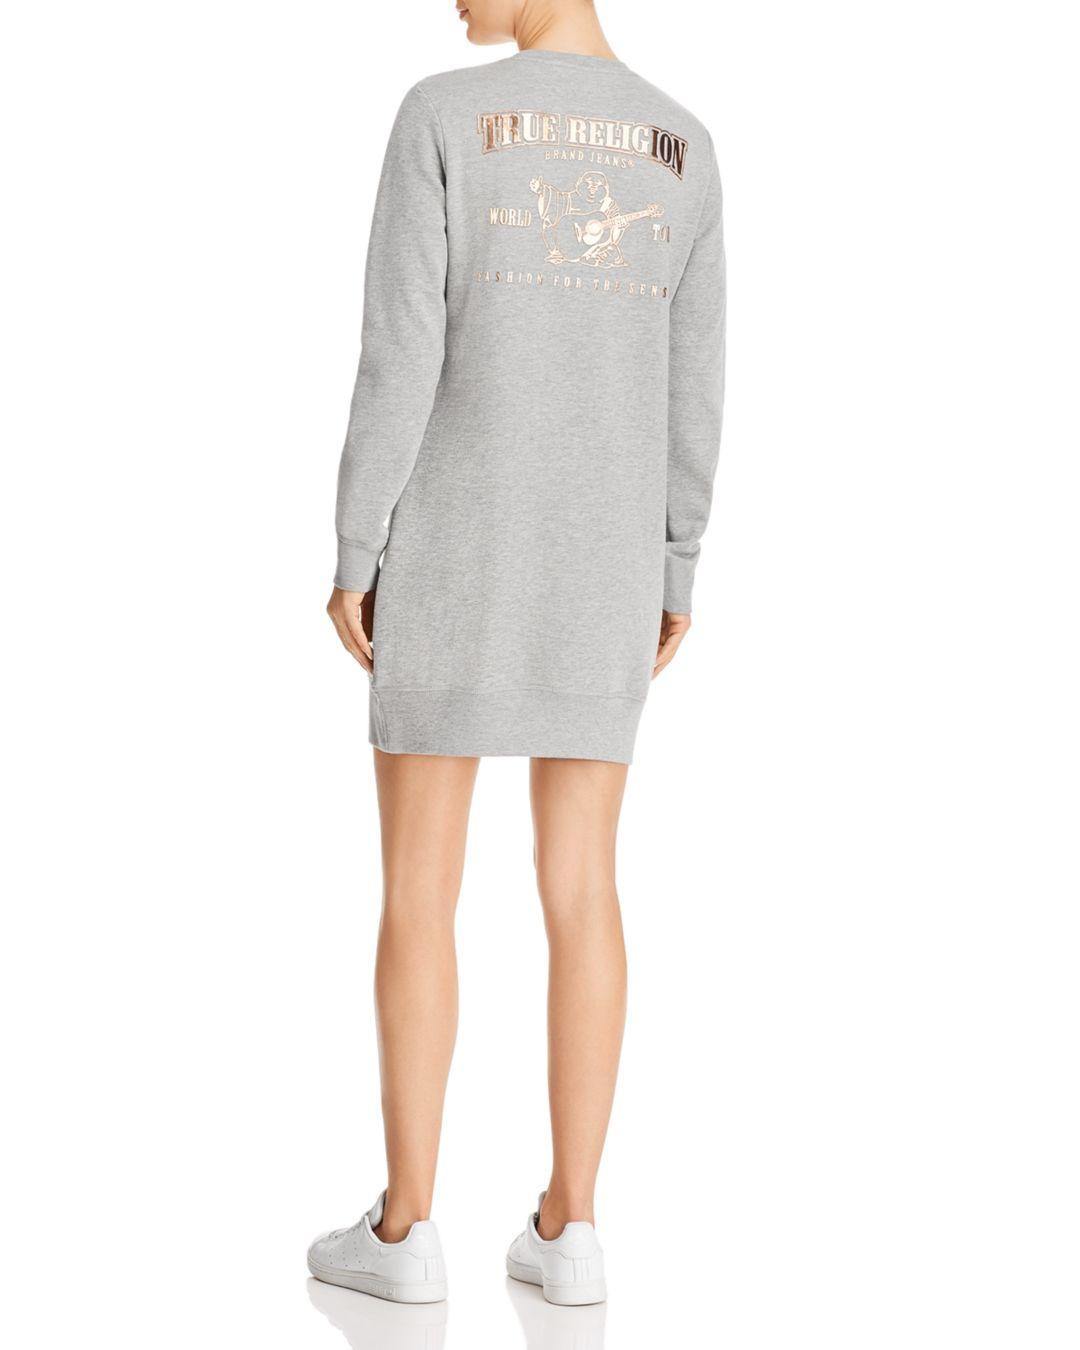 983a9b35d8 Lyst - True Religion Buddha Sweatshirt Dress in Gray